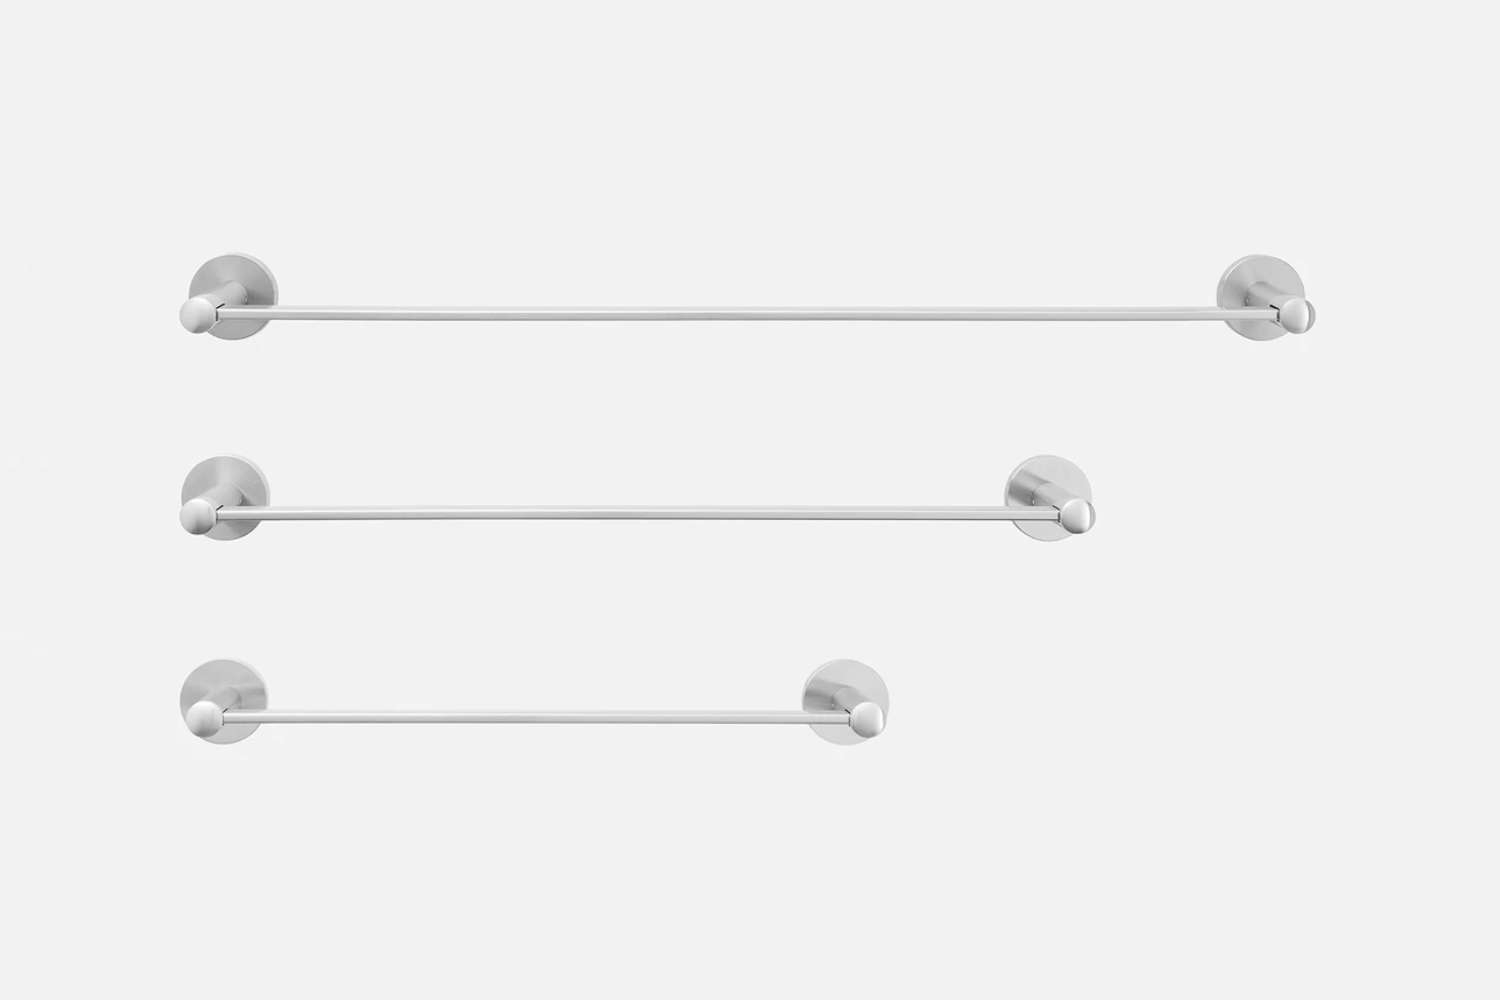 The Maxwell Towel Bar, shown in Satin Nickel, starts at $8 at Schoolhouse.